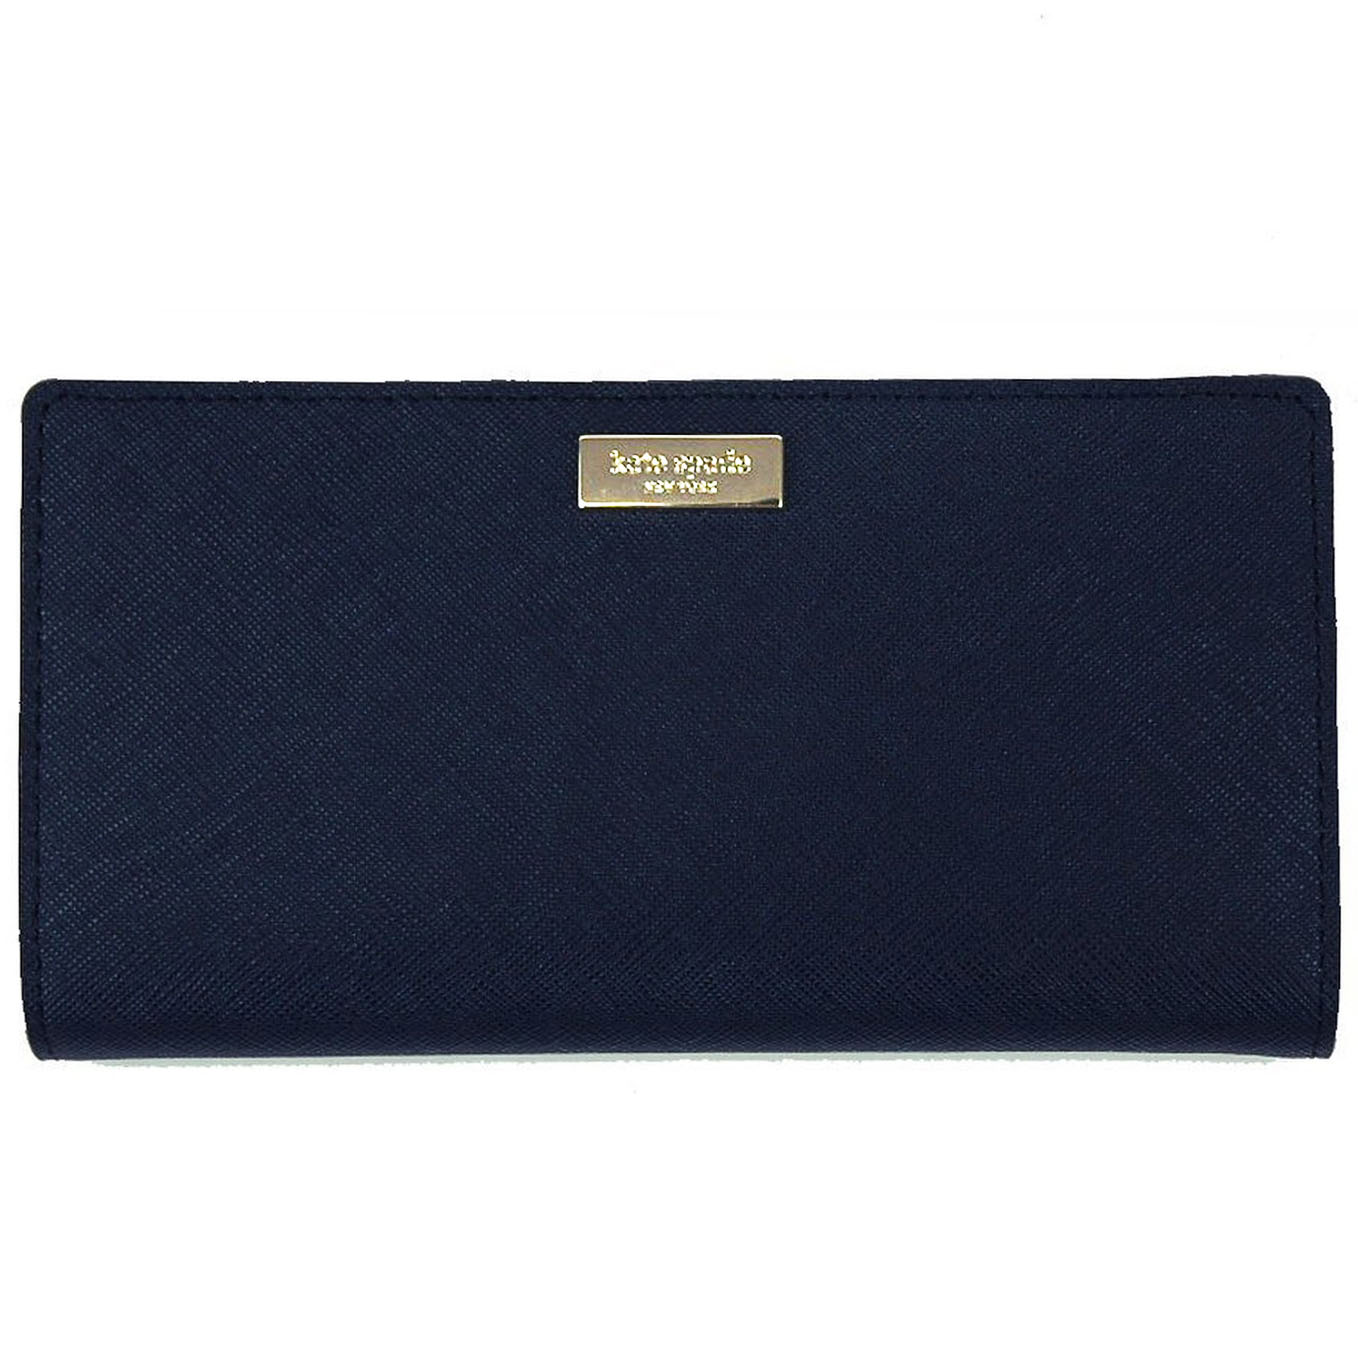 Kate Spade Laurel Way Stacy Wallet Offshore Navy # WLRU2673